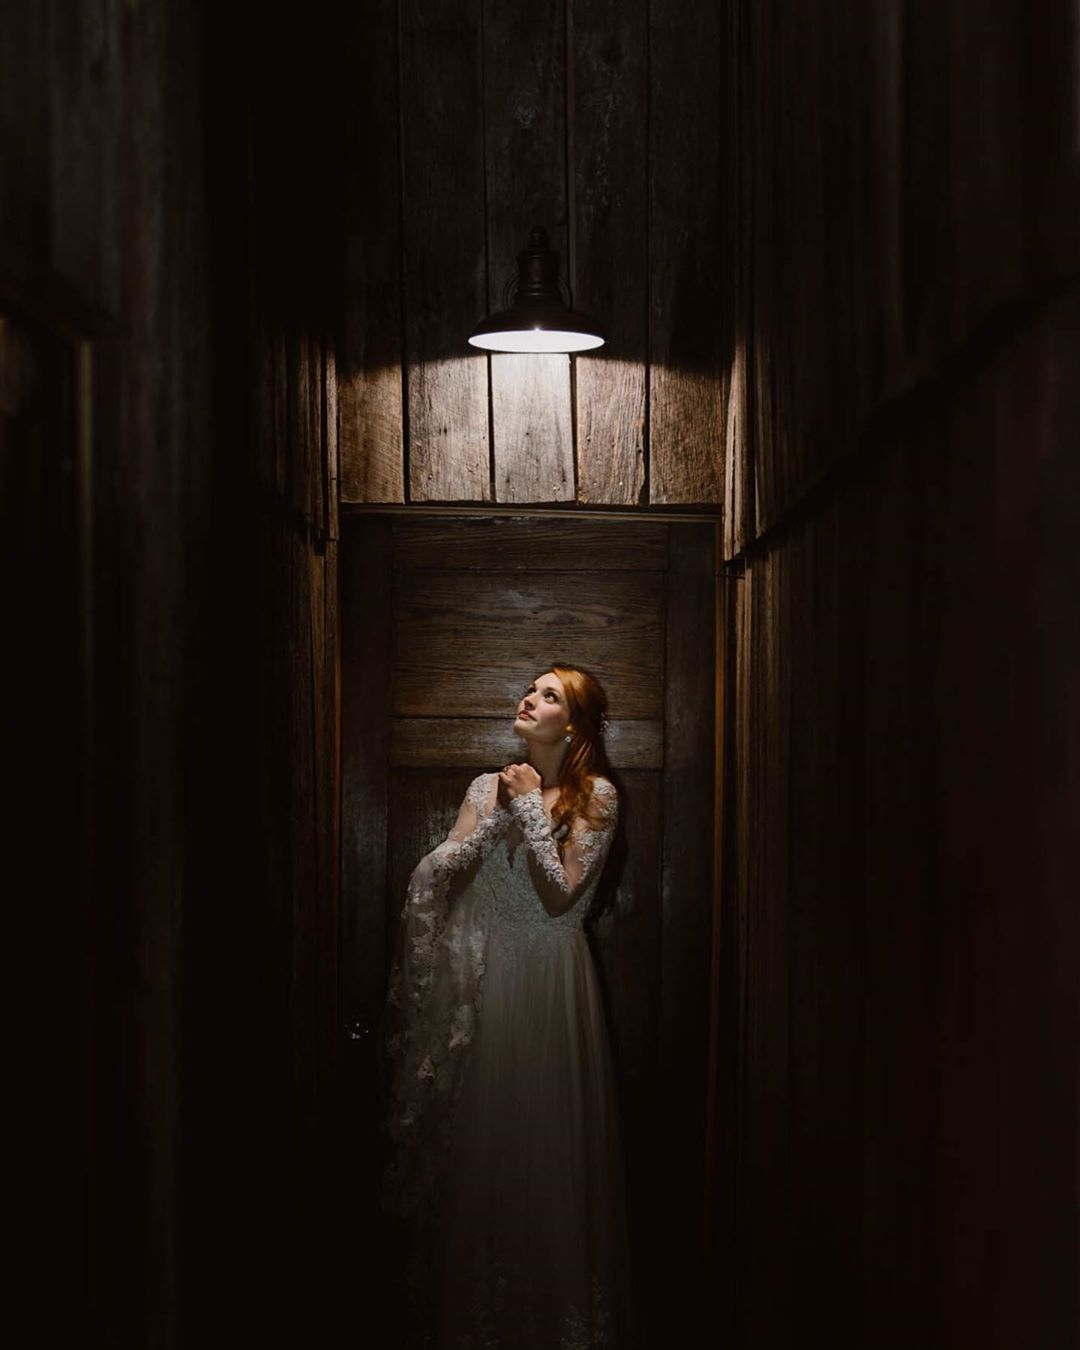 Portrait of a bride standing right the light source in an enclosed space